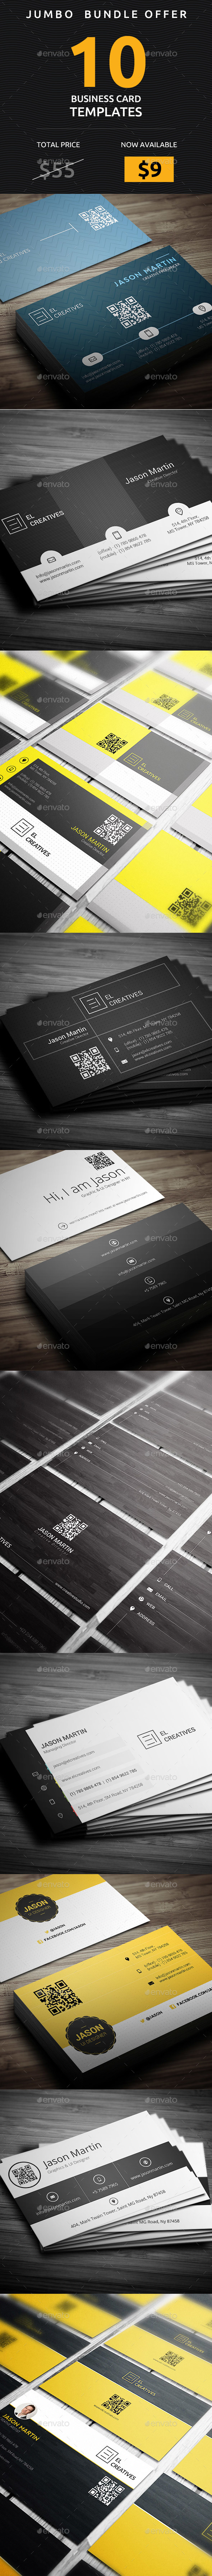 GraphicRiver Jumbo Bundle 10 in 1 Pro Master Business Cards Collection 20660413